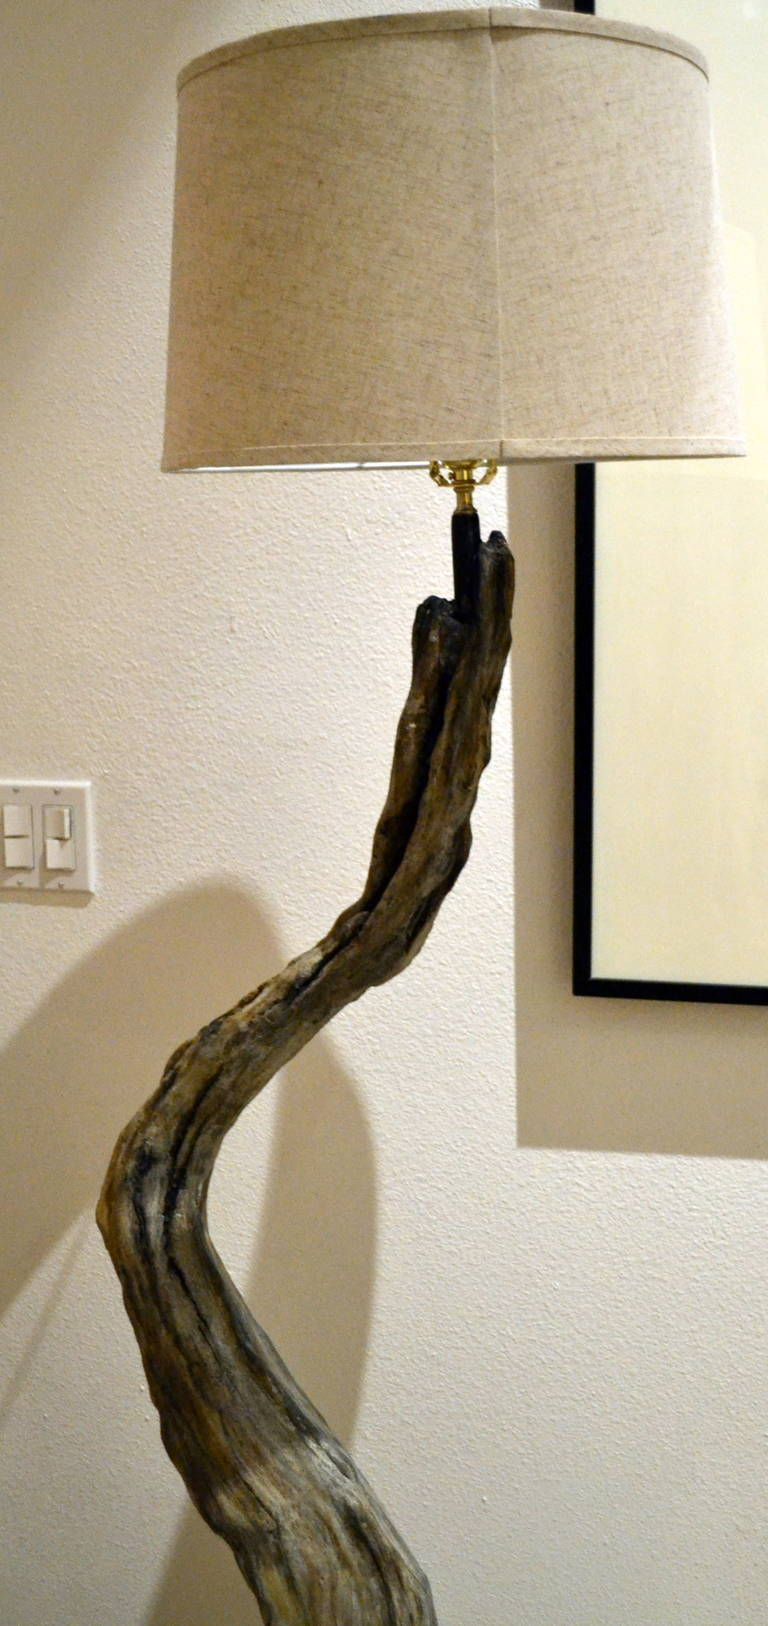 reading aqua inspirations floor magic lamp bedside top blue tree driftwood moroccan lamps